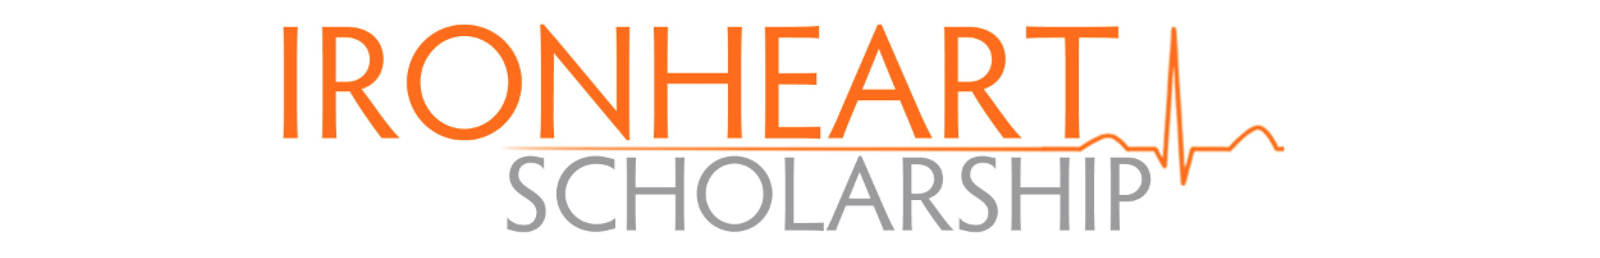 Ironheart Foundation Scholarships